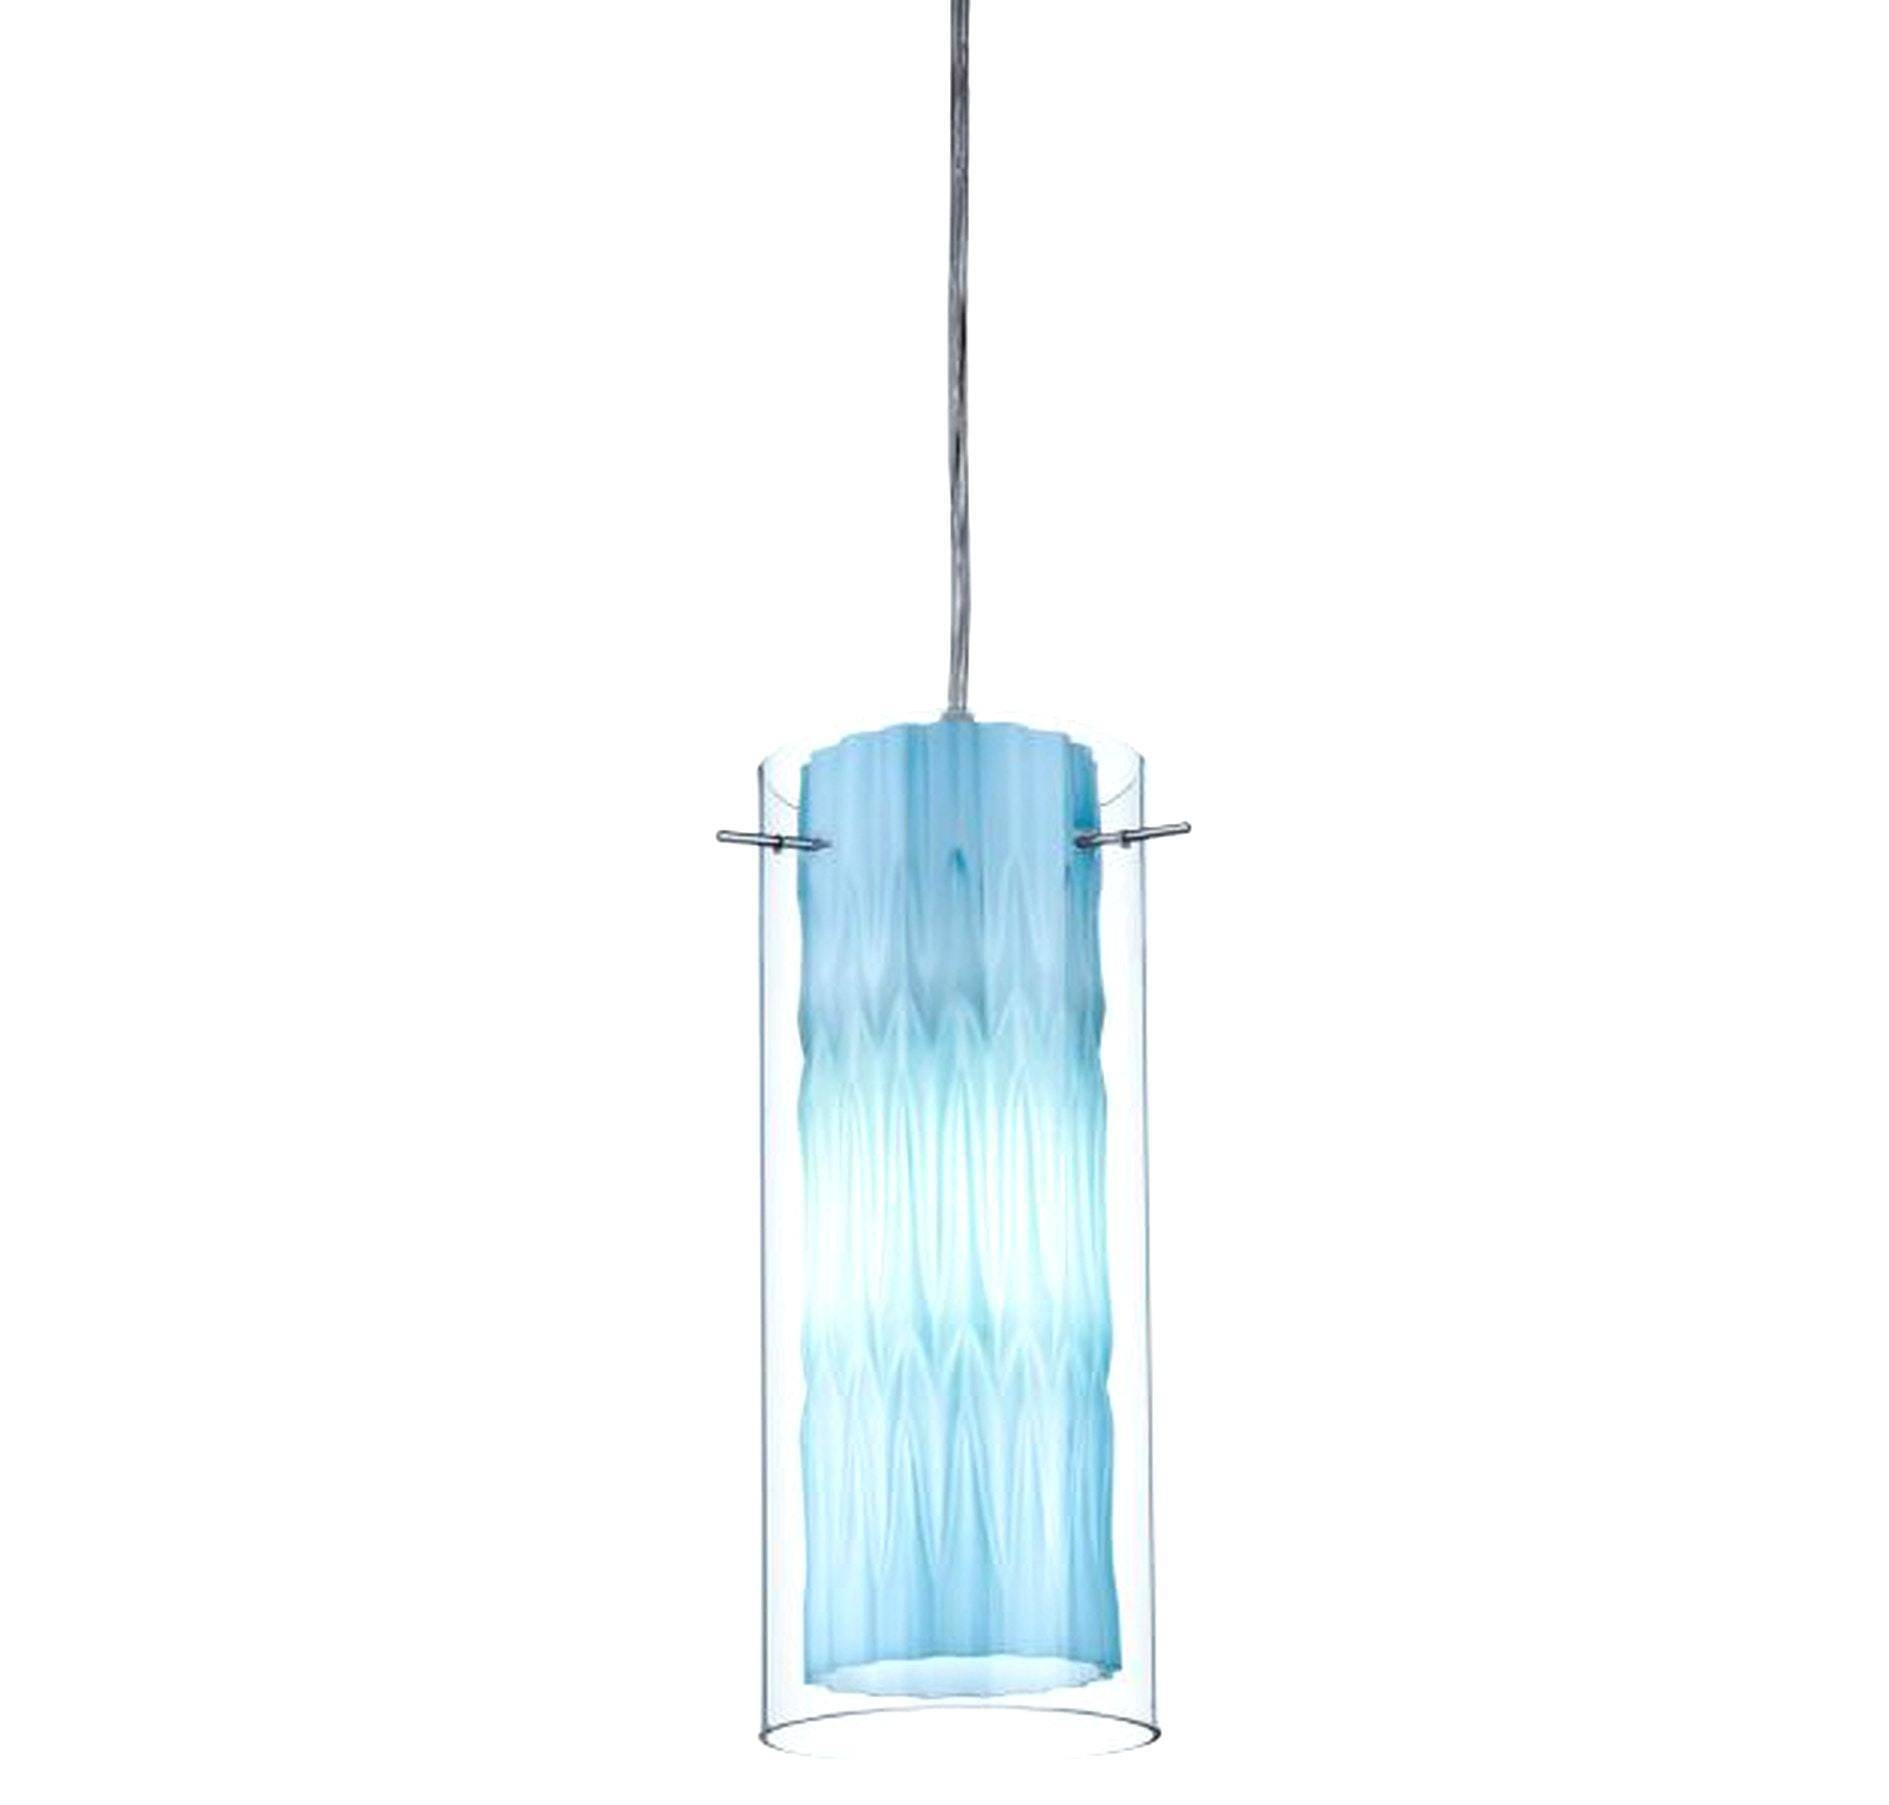 Cobalt Blue Pendant Light With Lighting Design Ideas Aqua Metal inside Blue Pendant Lights (Image 6 of 15)